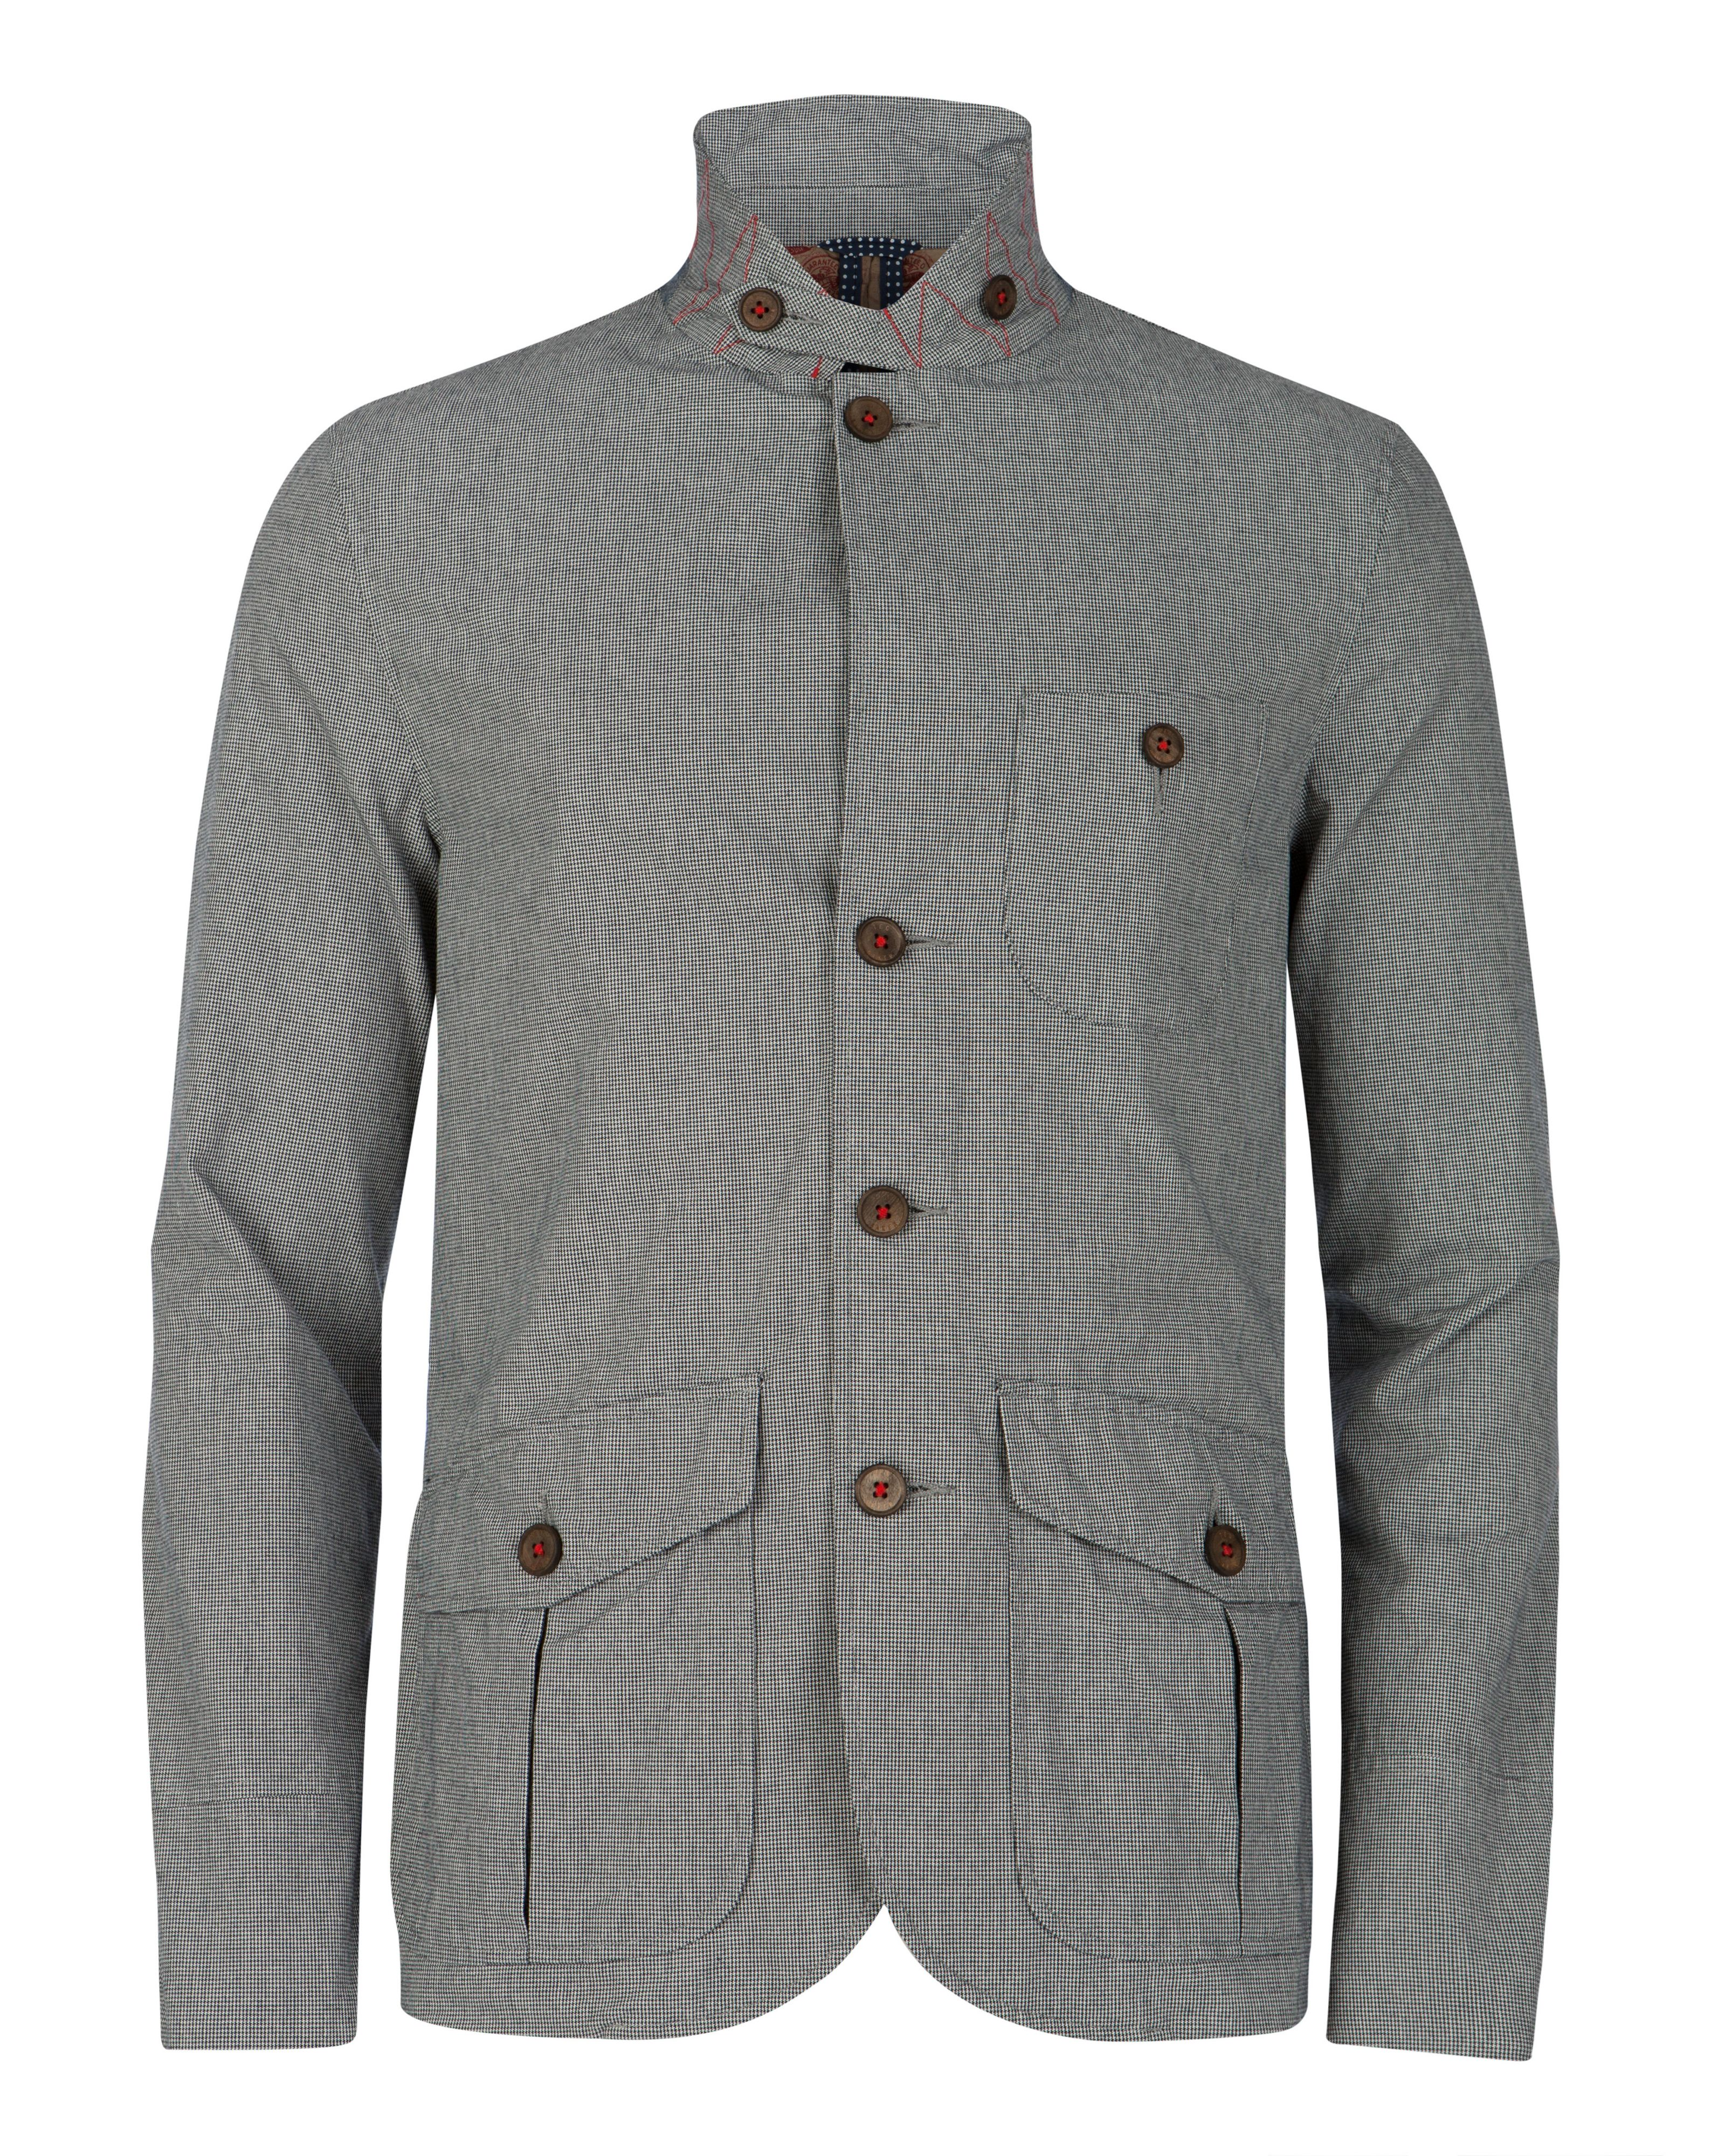 Sirius cotton washed blazer